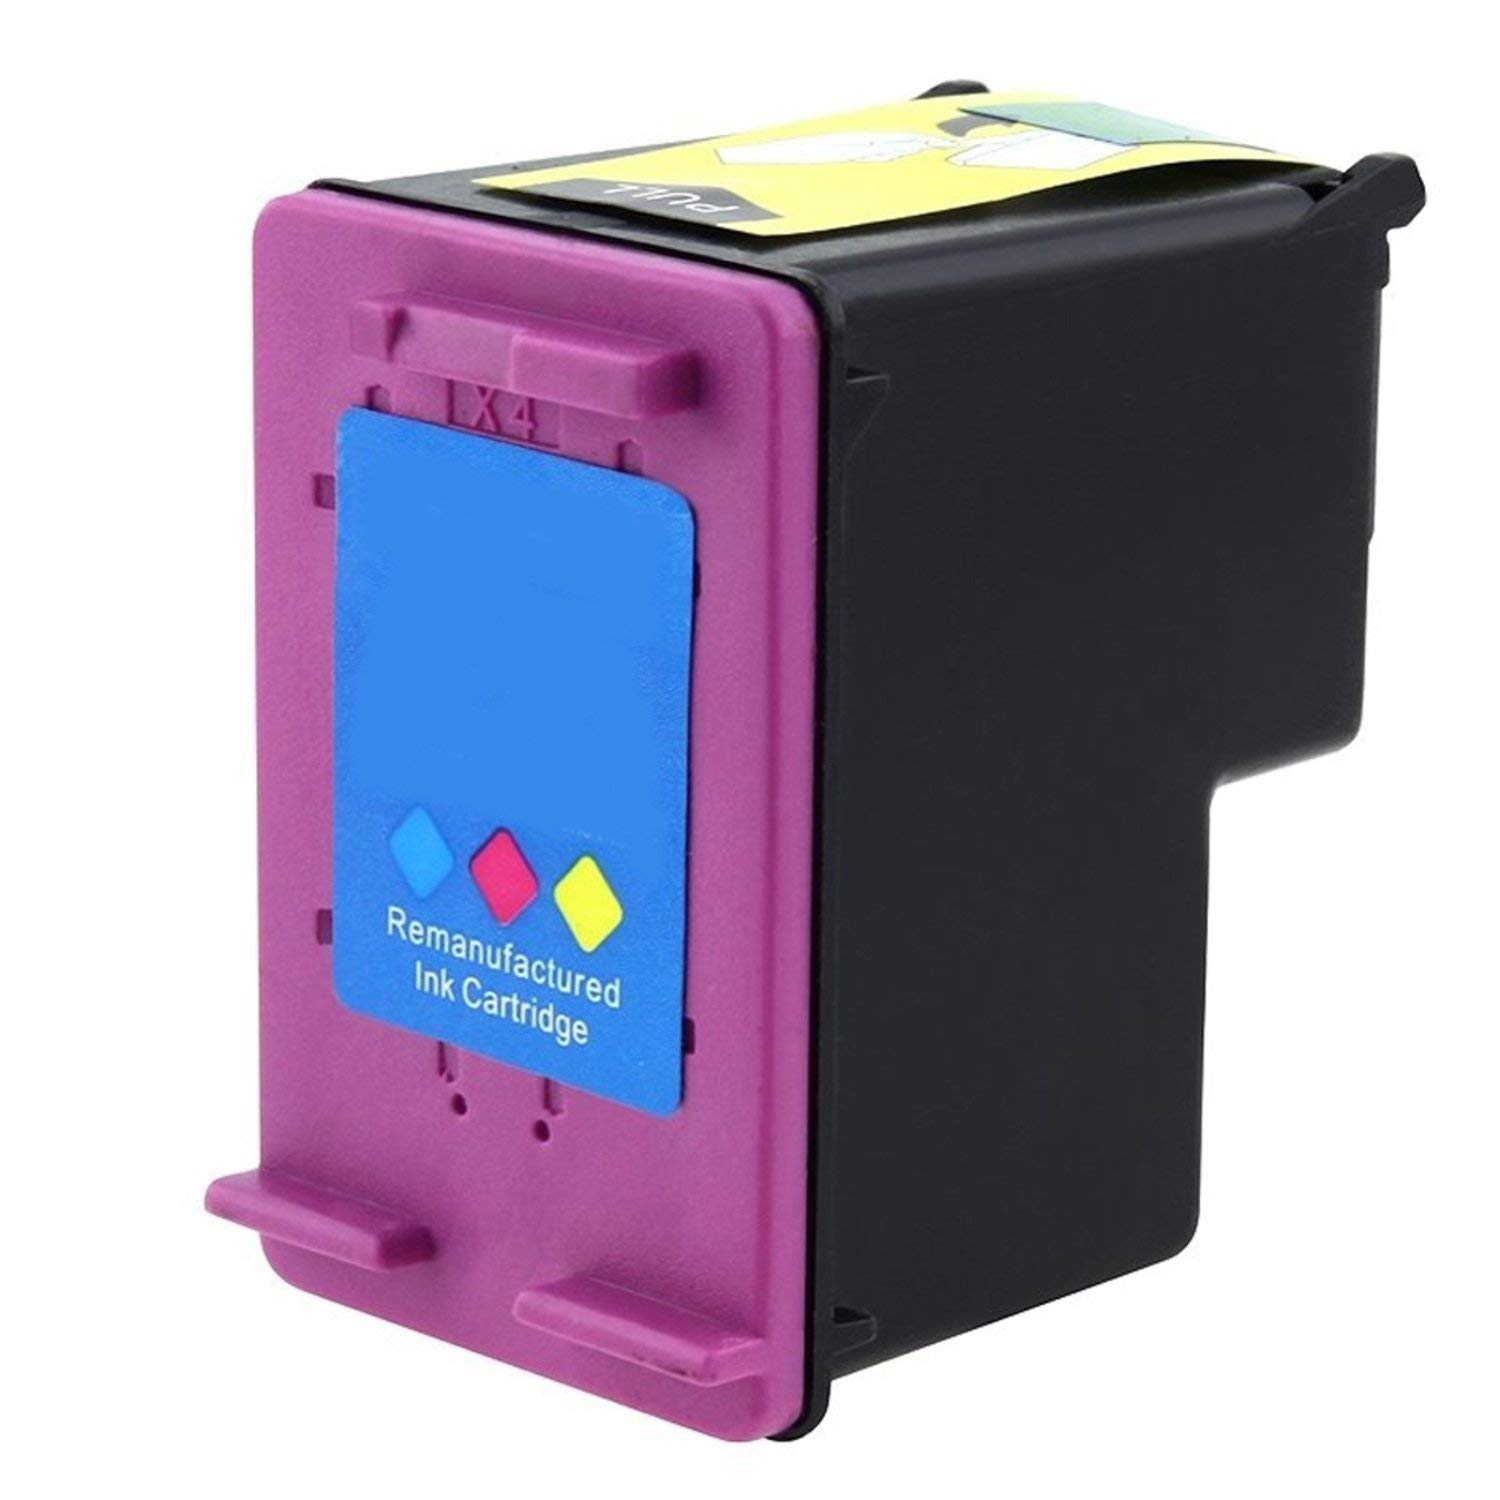 G&G Remanufactured Ink Cartridge Replacement for HP CH564WN/61XL CH564WN, Color